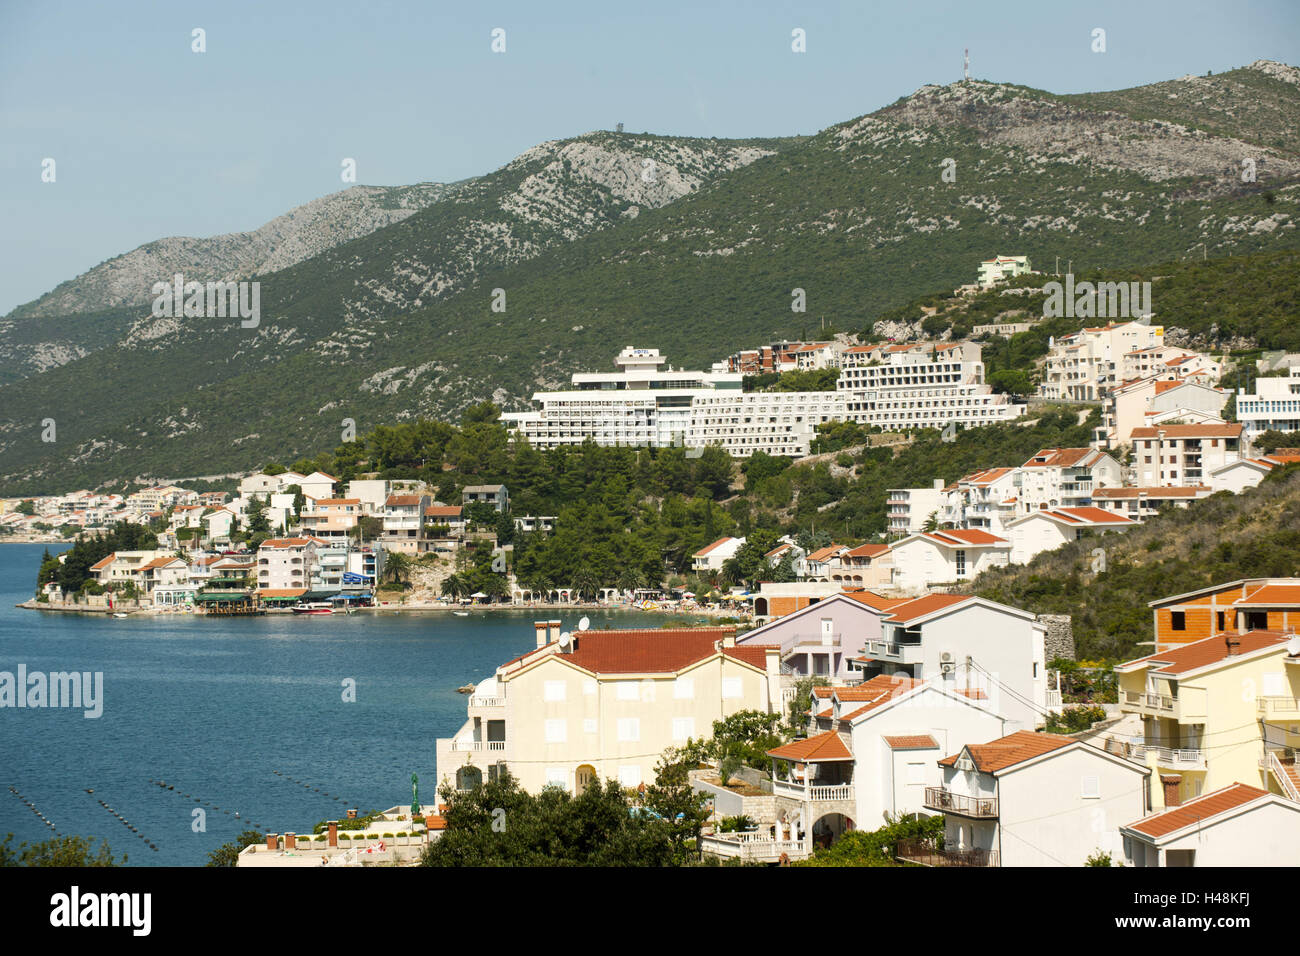 Bosnia-Herzegovina, Dalmatia, Neum, it forms the only access the country to the sea, - Stock Image